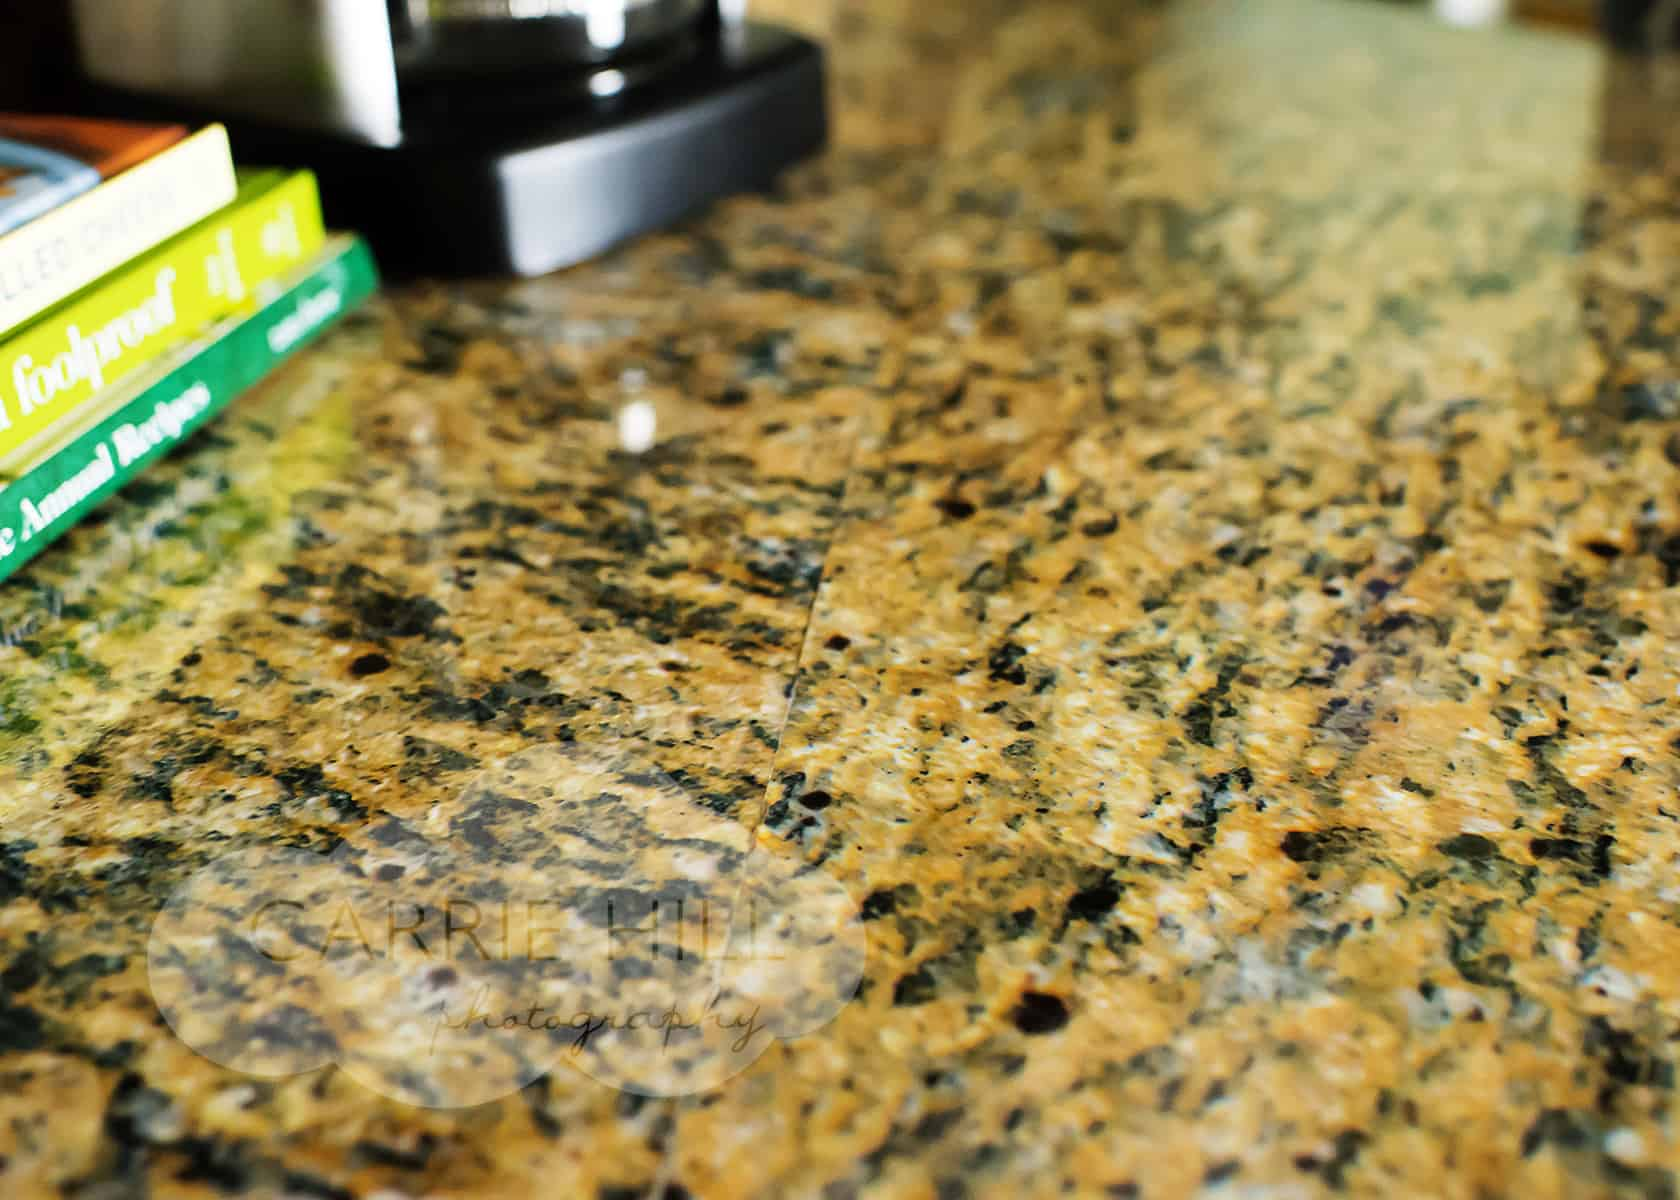 Fabulous Faux Granite For Every Budget Heartwork Organizing Tips For Organizing Your Home